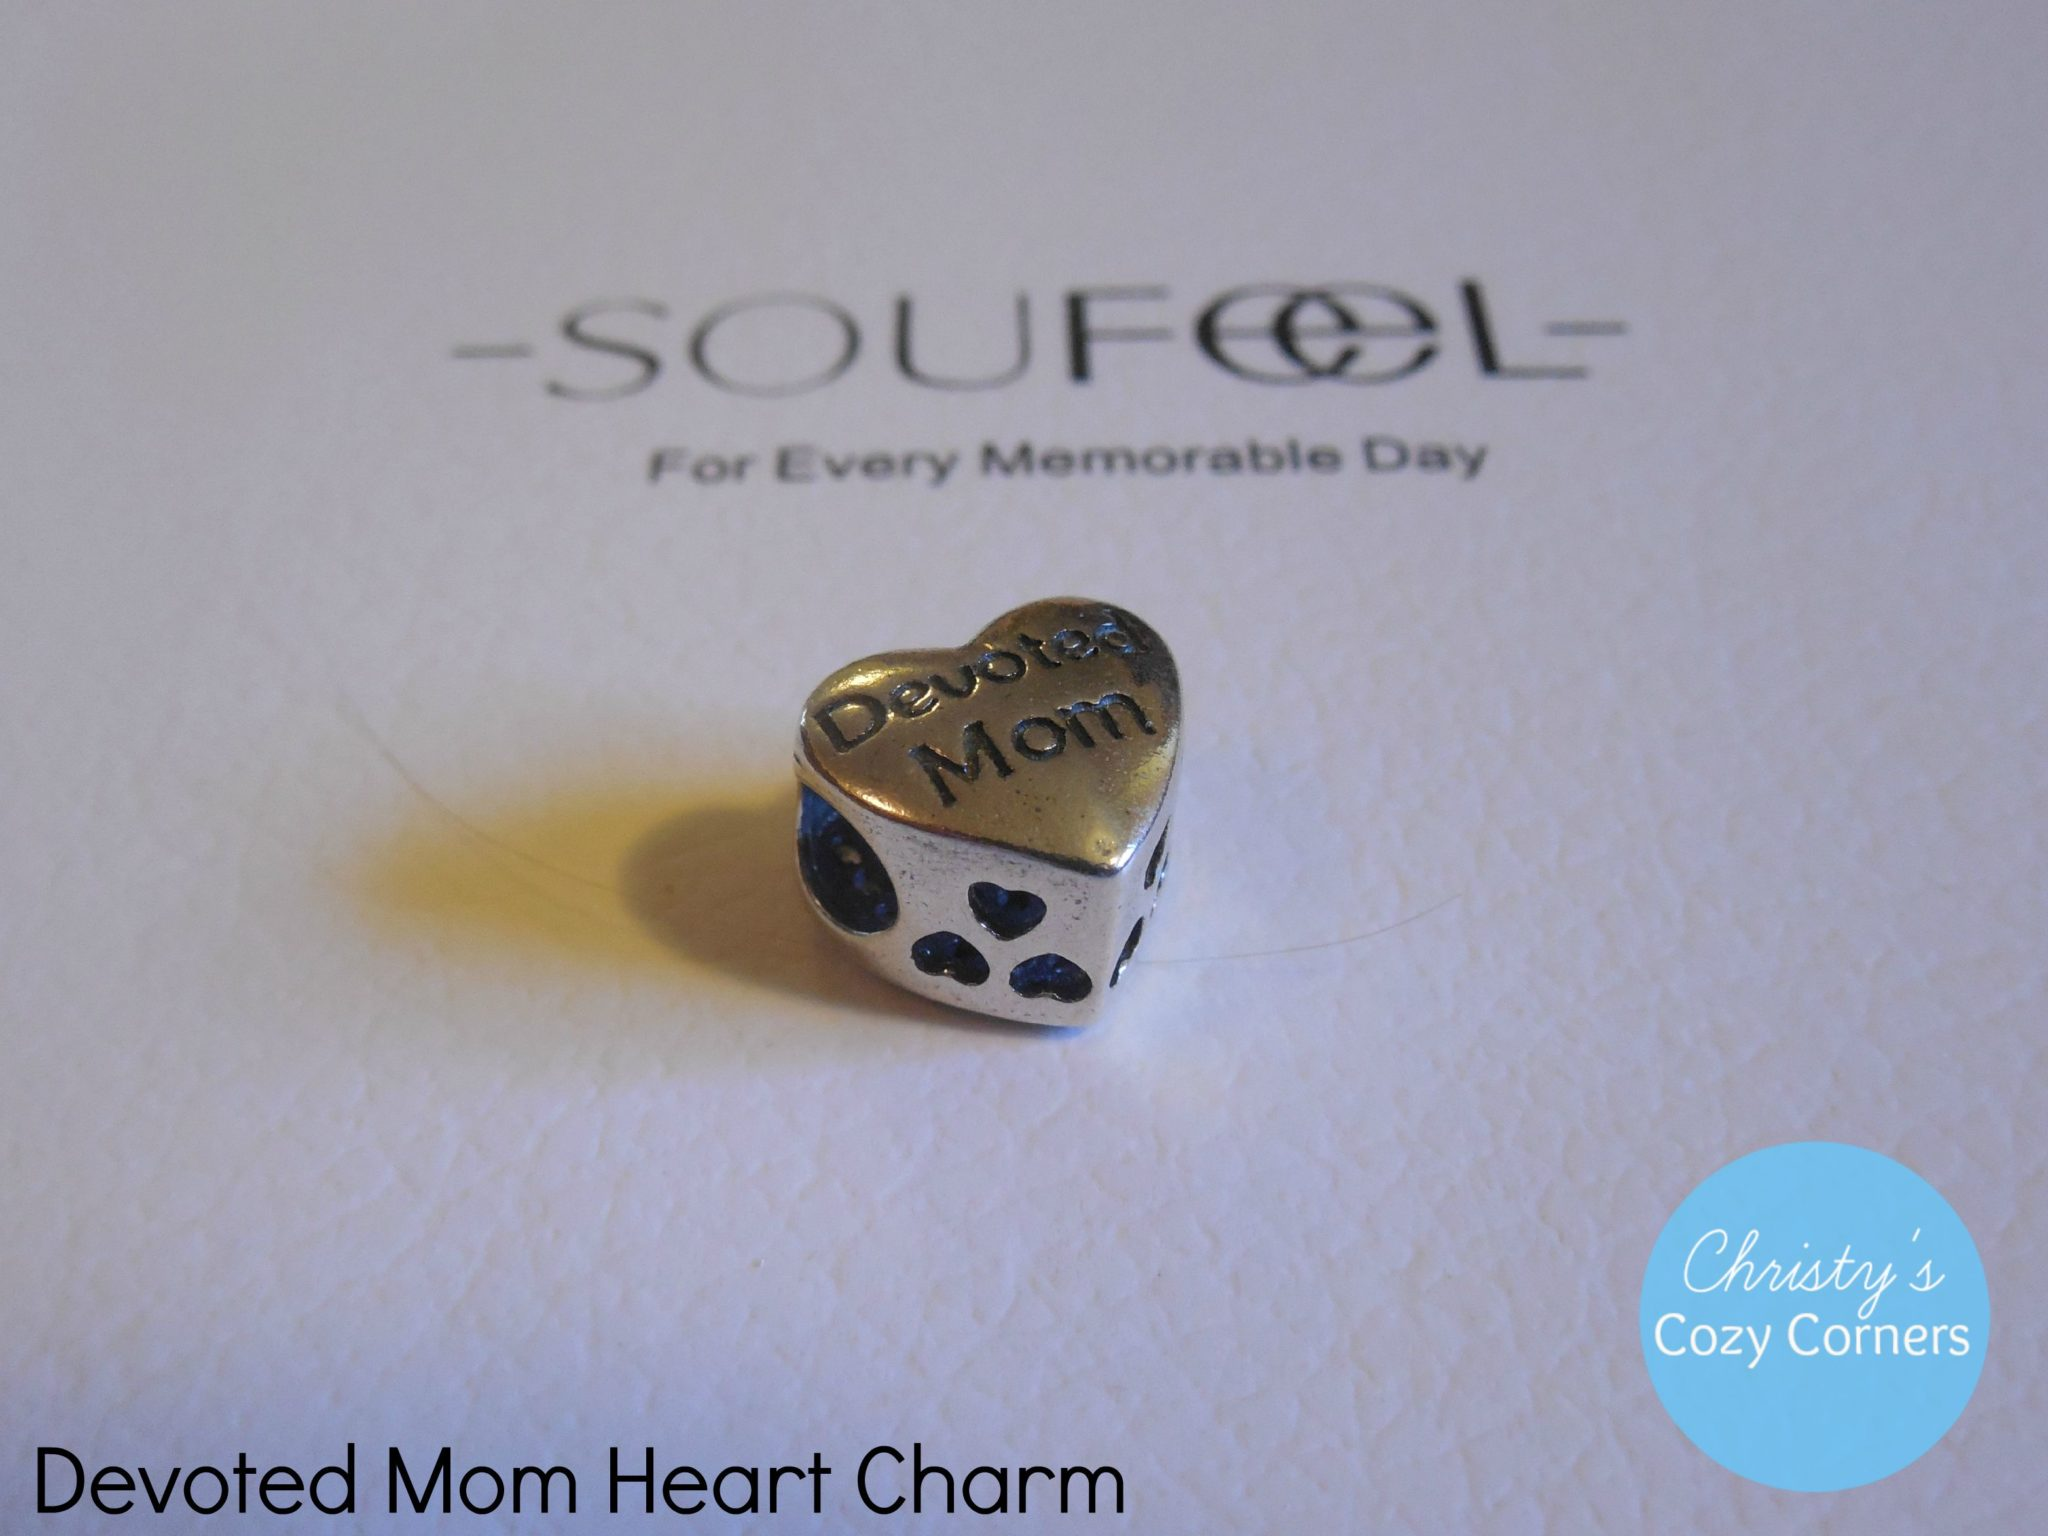 Soufeel Devoted Mom